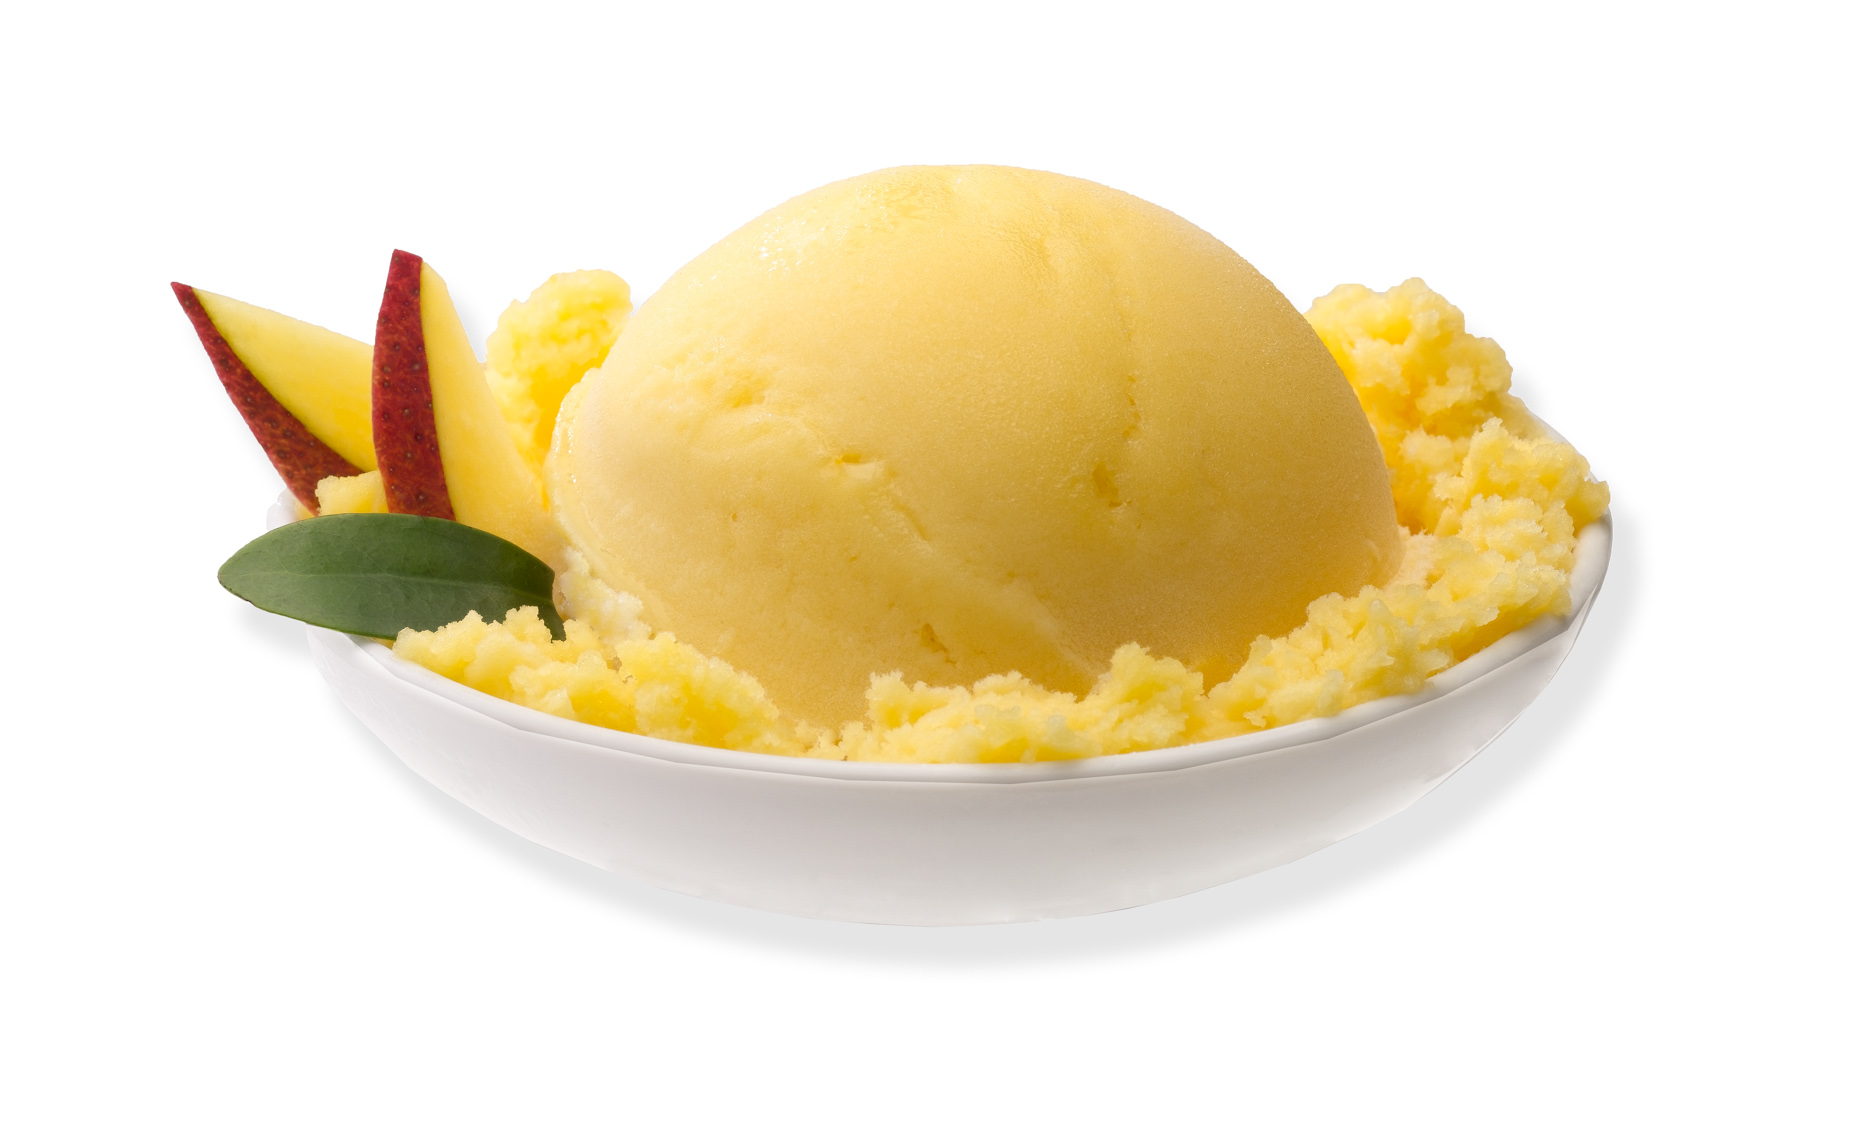 Mango Ice Cream Photo